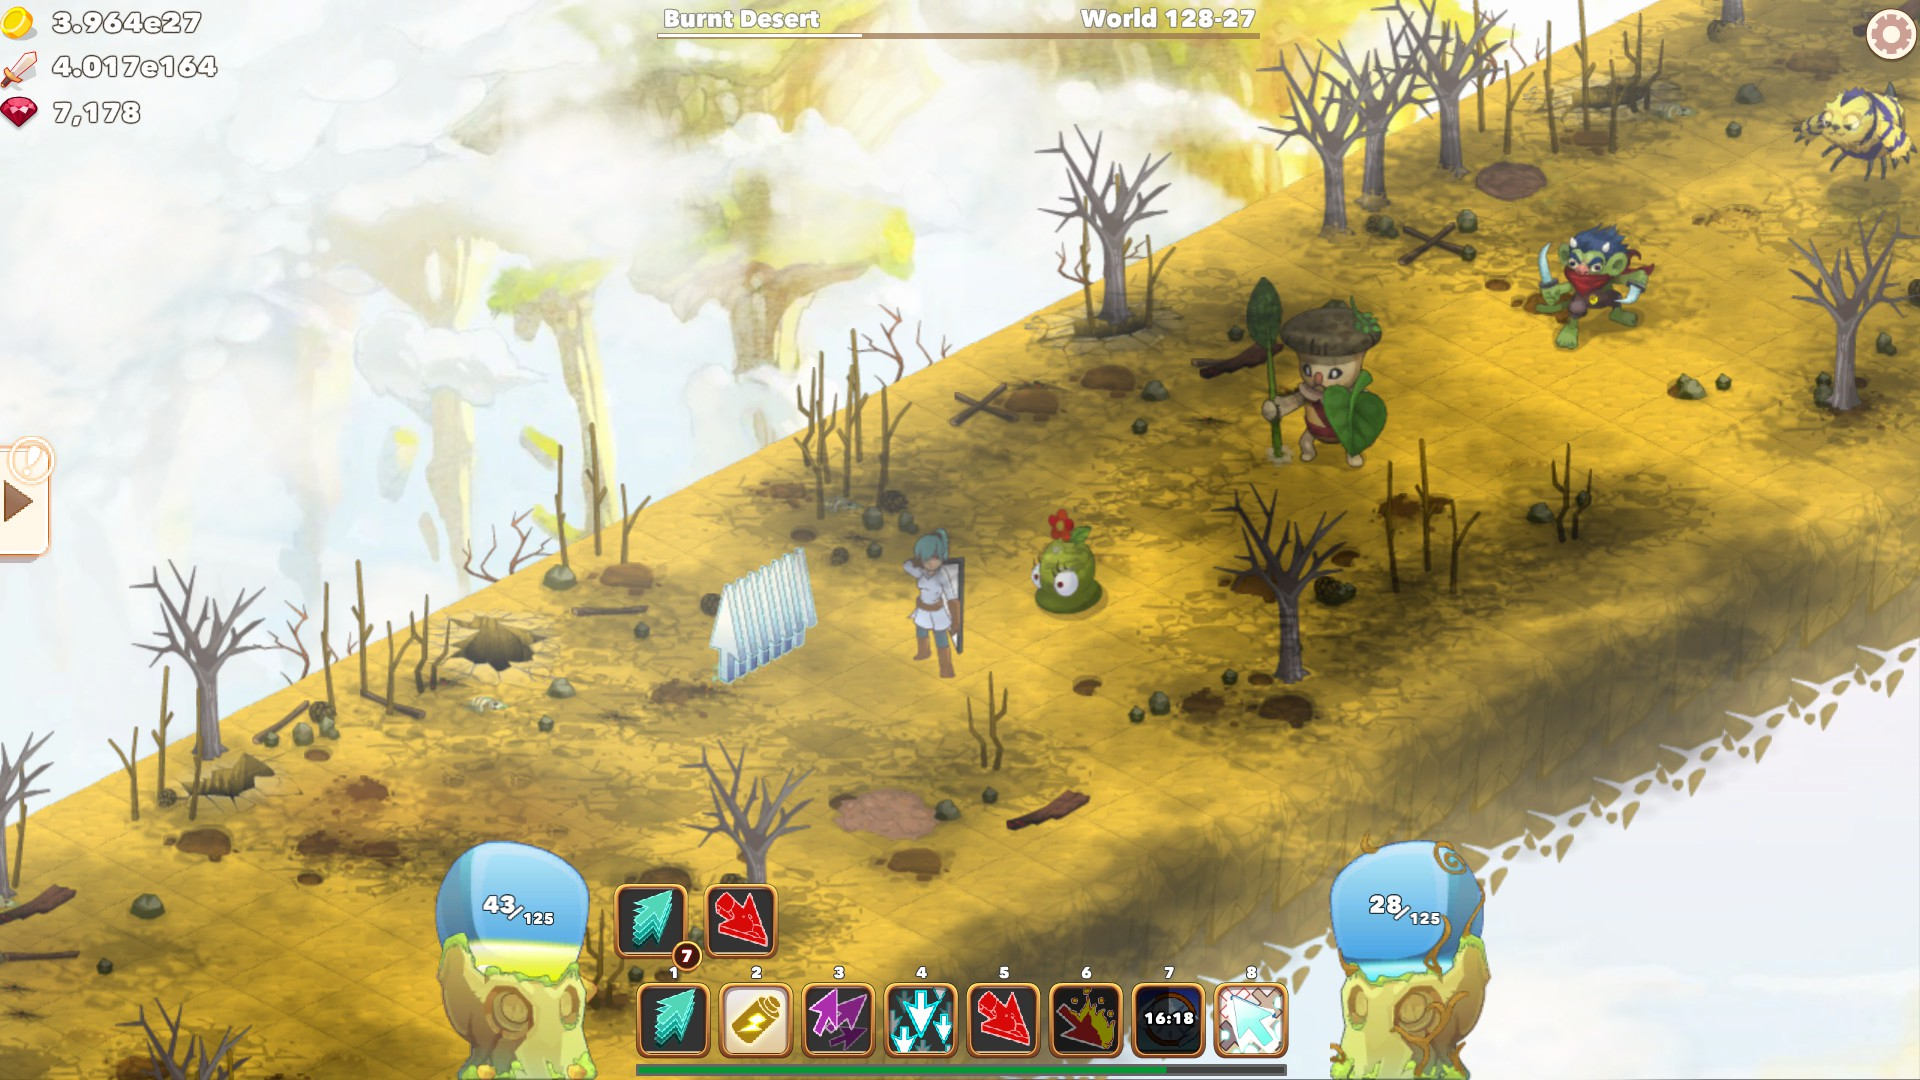 Images - Mixed Worlds mod for Clicker Heroes 2 - Mod DB